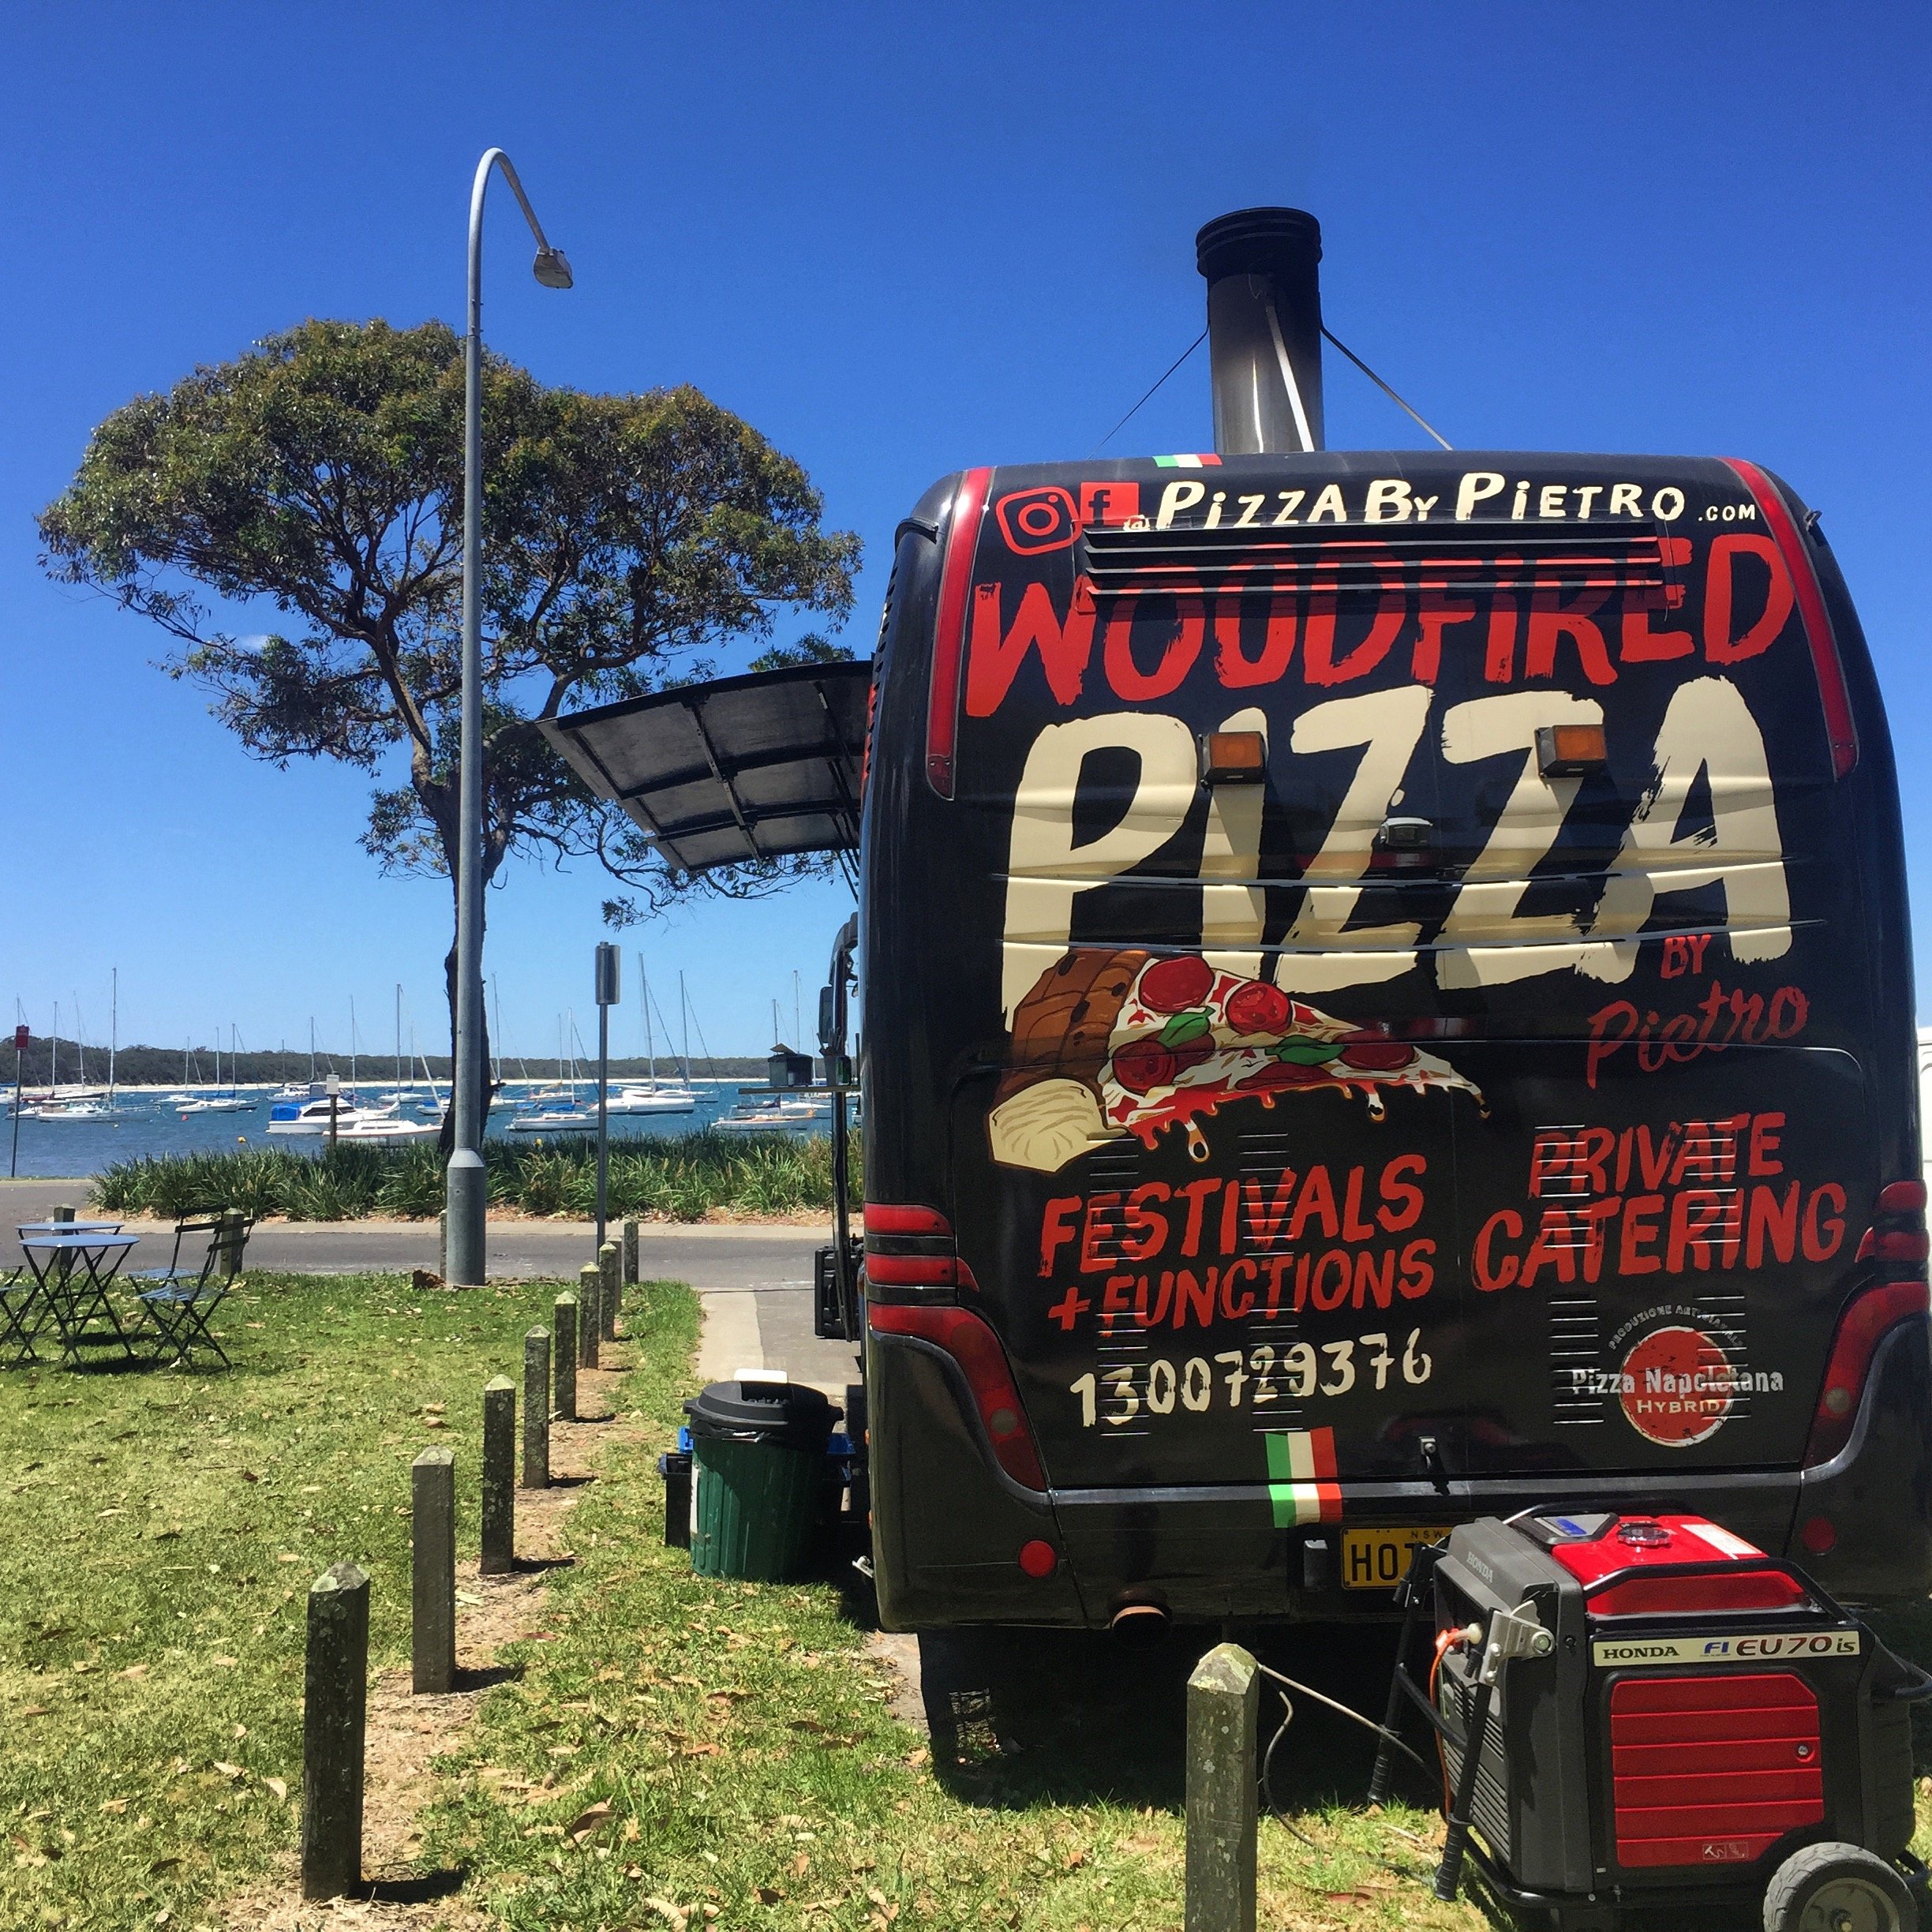 Hand-made and authentic Italian - Pizza By Pietro Wood Fired Pizza Foodtruck at Callala Bay